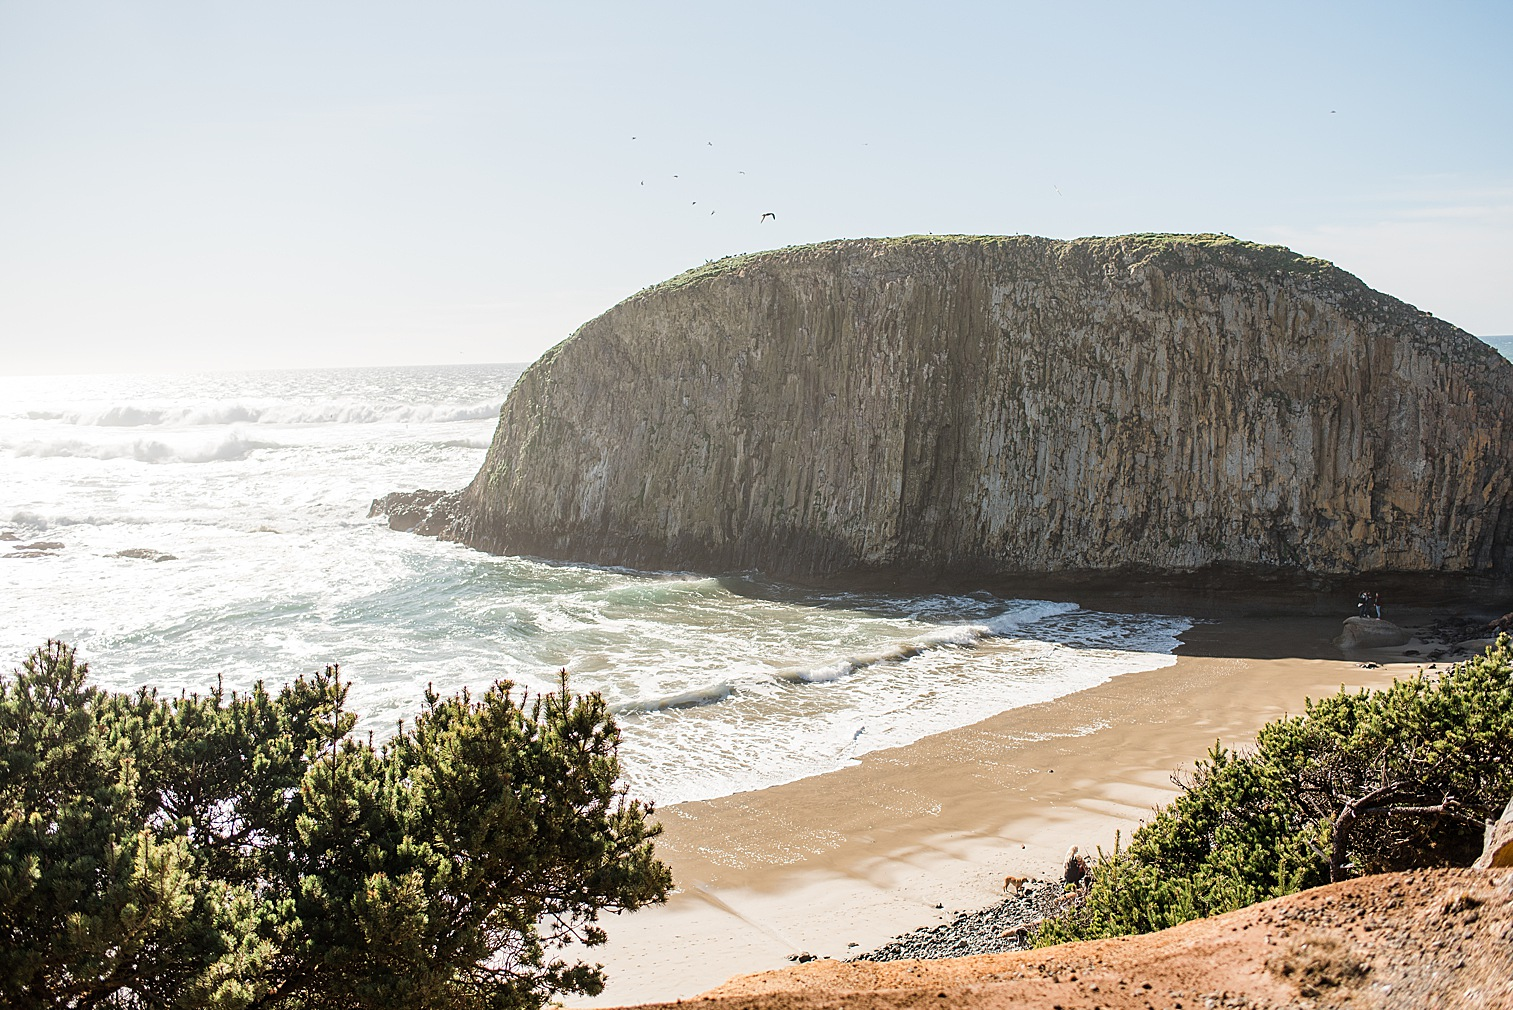 Oregon Coast Elopement Locations & Inspiration - Seal Rock. Image by Forthright Photo